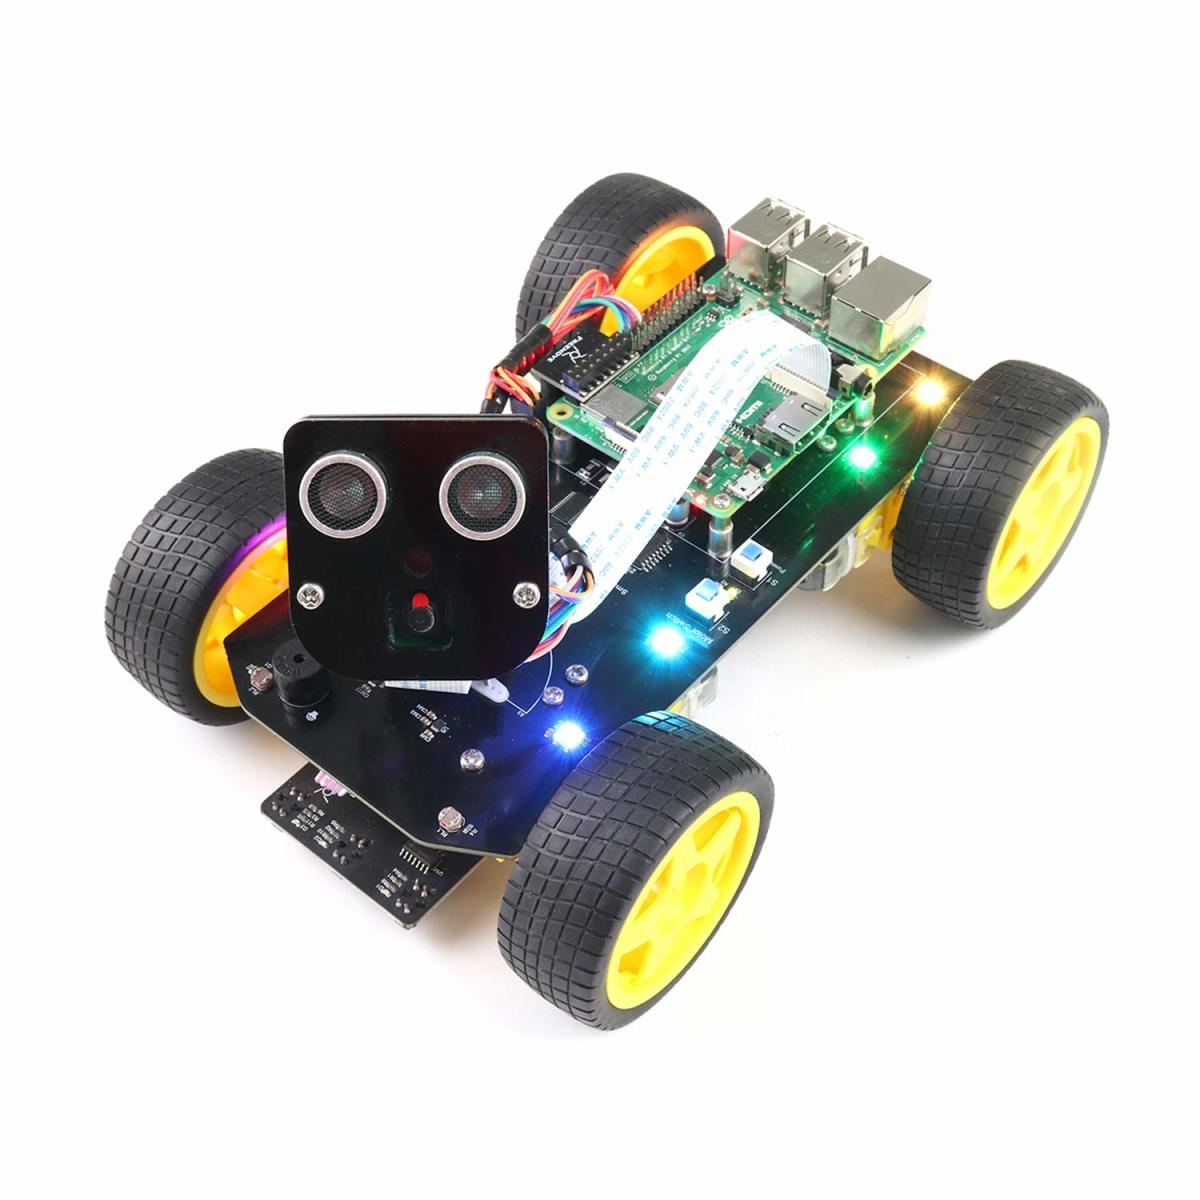 The Freenove smart car is a more barebones but clever robot kit